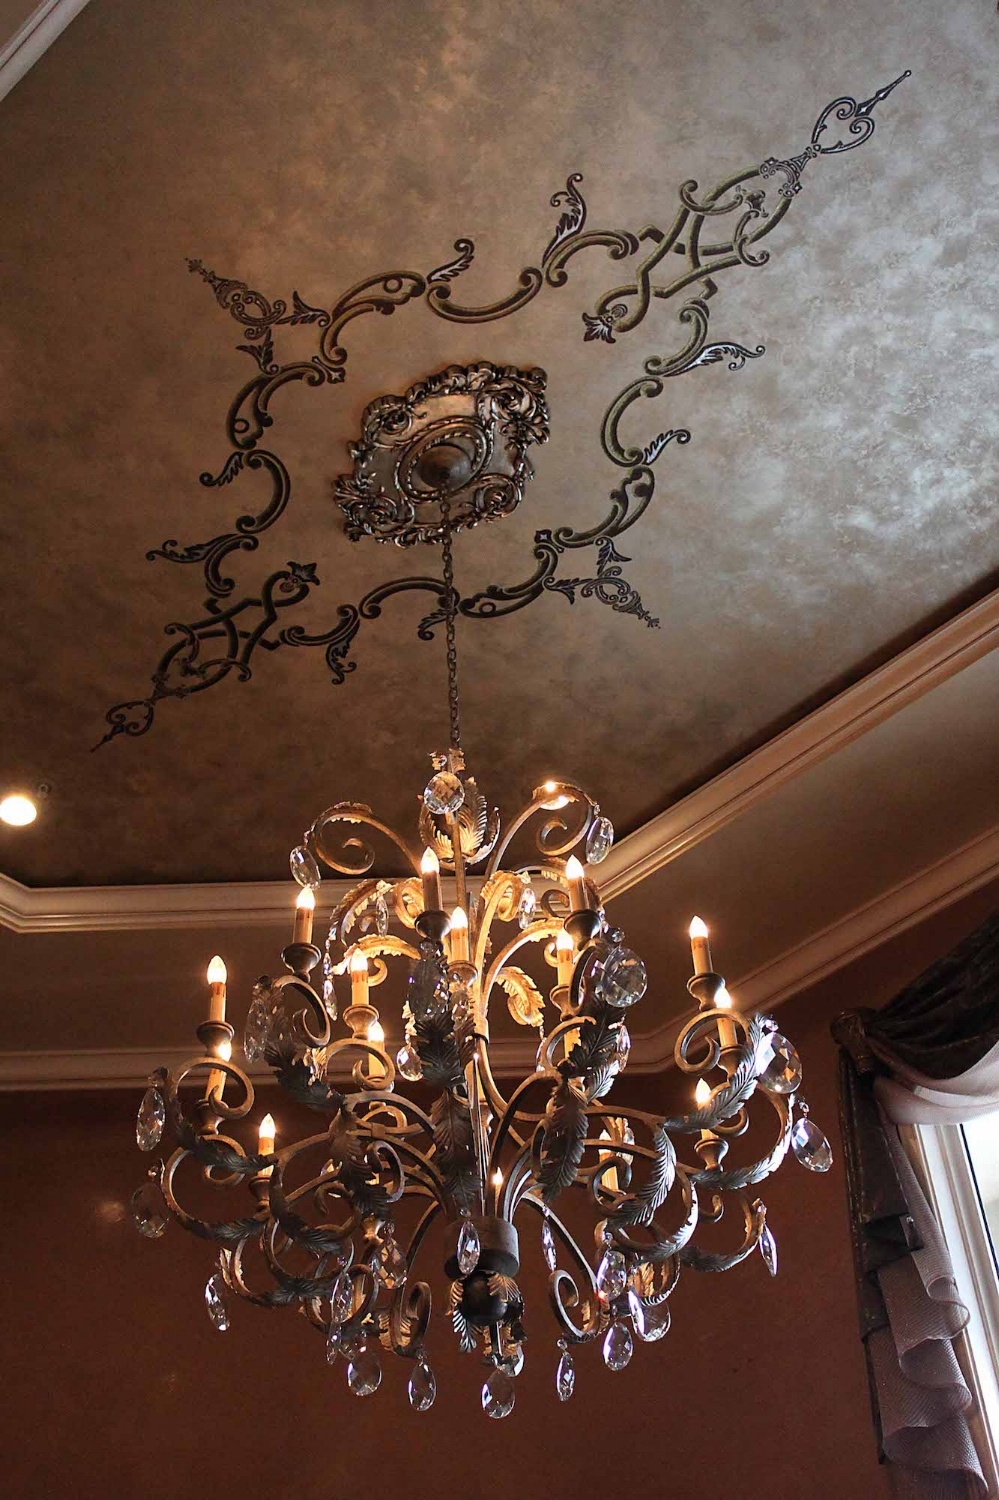 This ceiling was plastered with multiple metallic plasters accompanied with a custom embossed design with a textured plaster & highlighted with gold and silver metallics.